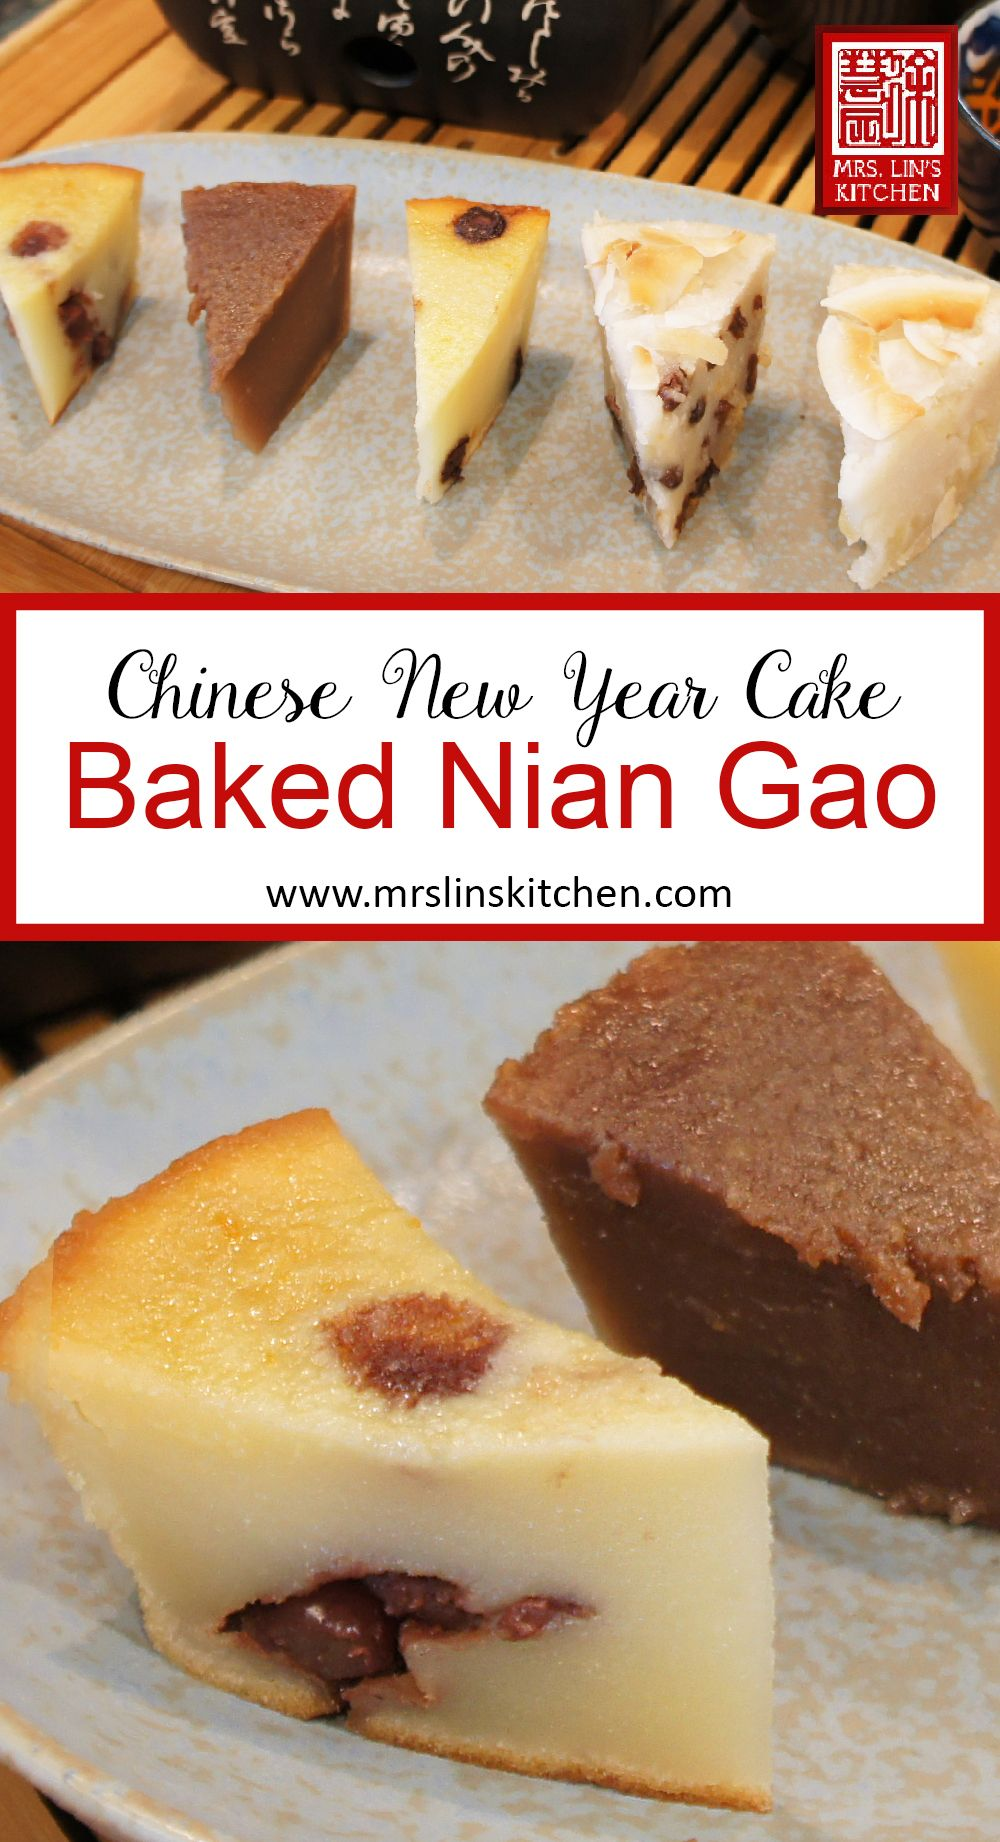 Nian Gao Is A Soft Chewy And Sticky Rice Cake Which Is Made Of Glutinous Rice Traditionally Nian Gao Is Steamed Or Fried W Nian Gao Taiwanese Food Milk Cake